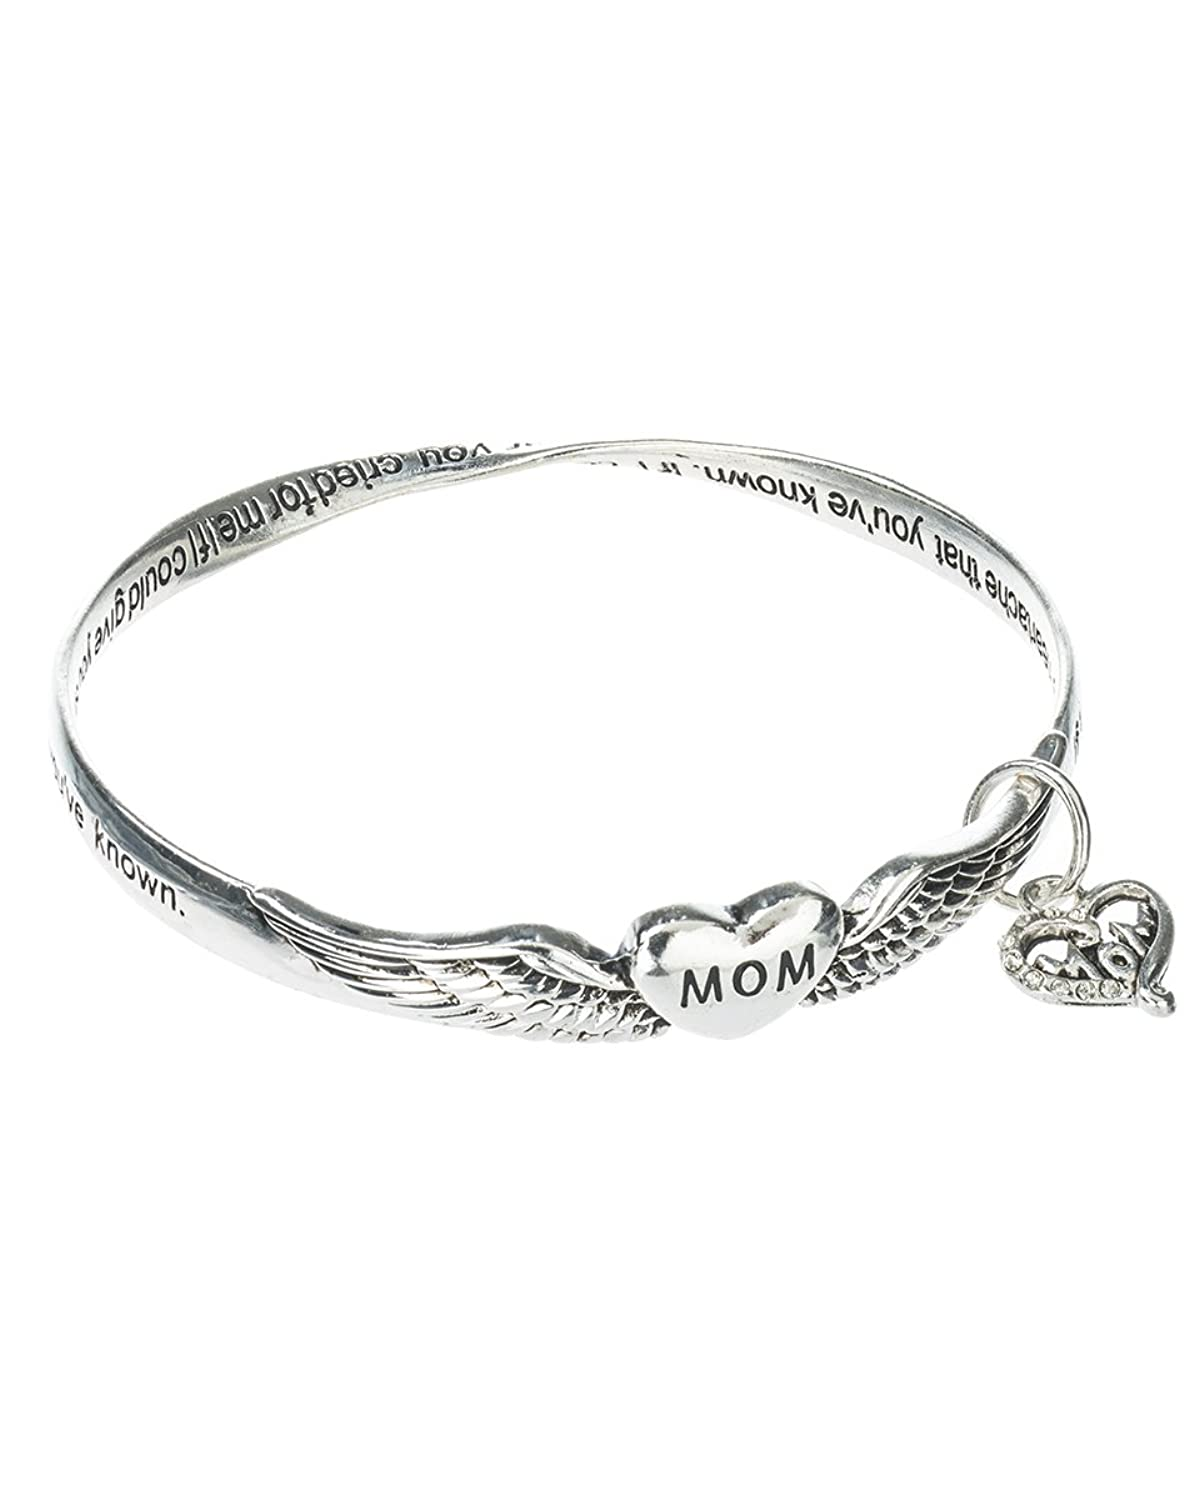 Silver-tone Mothers Prayer Twist Engraved Bangle Bracelet with Mom Charm Prayer Card Included